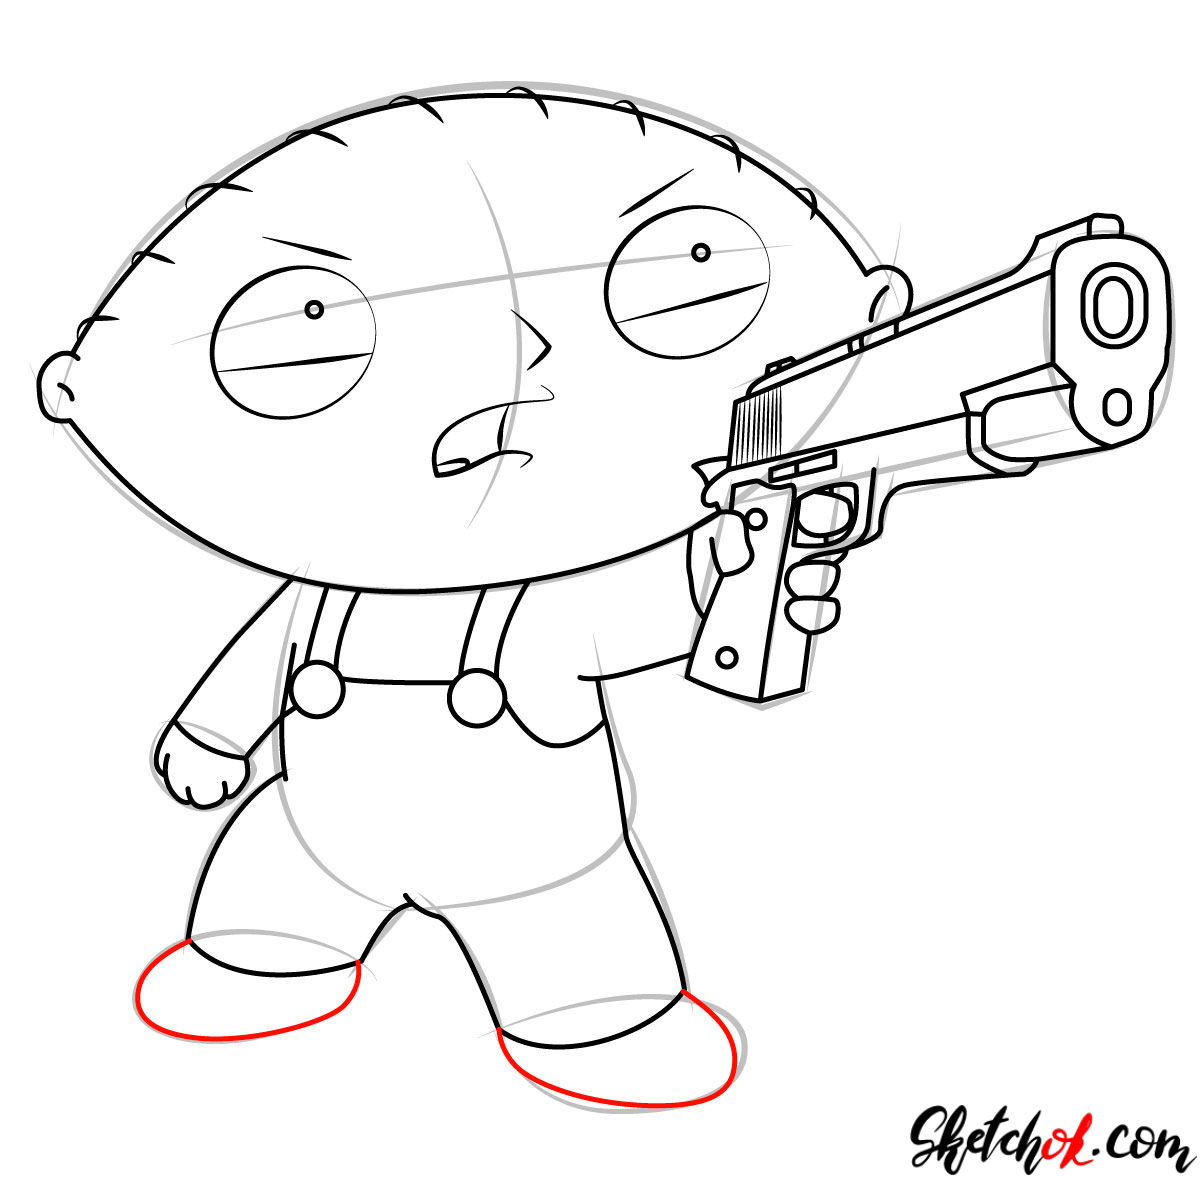 How to draw Stewie Griffin with a pistol - step 10